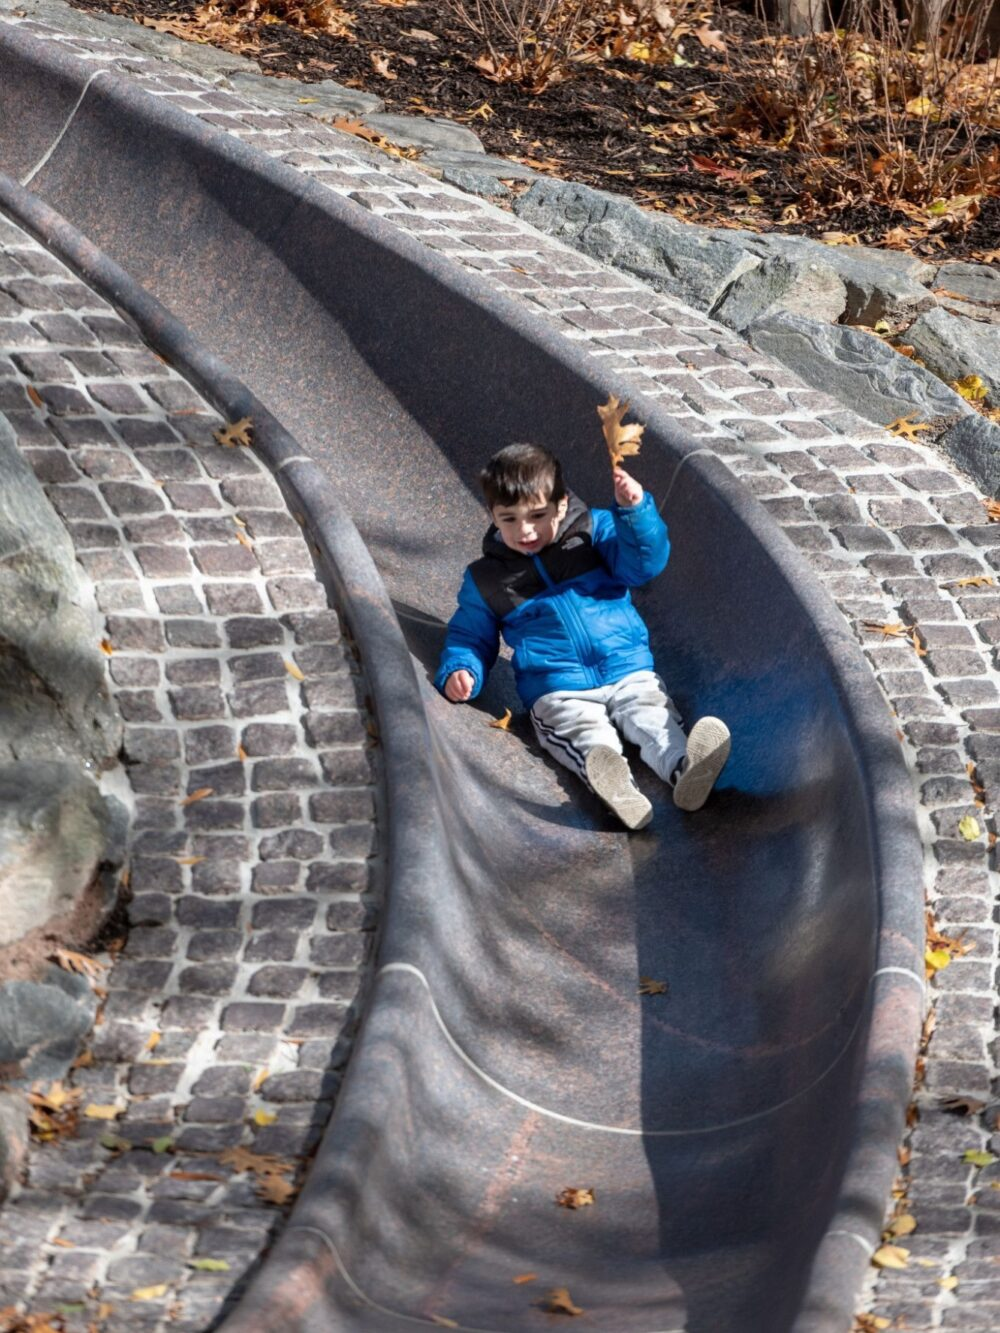 A young boy slips down the long, curving sliding pond